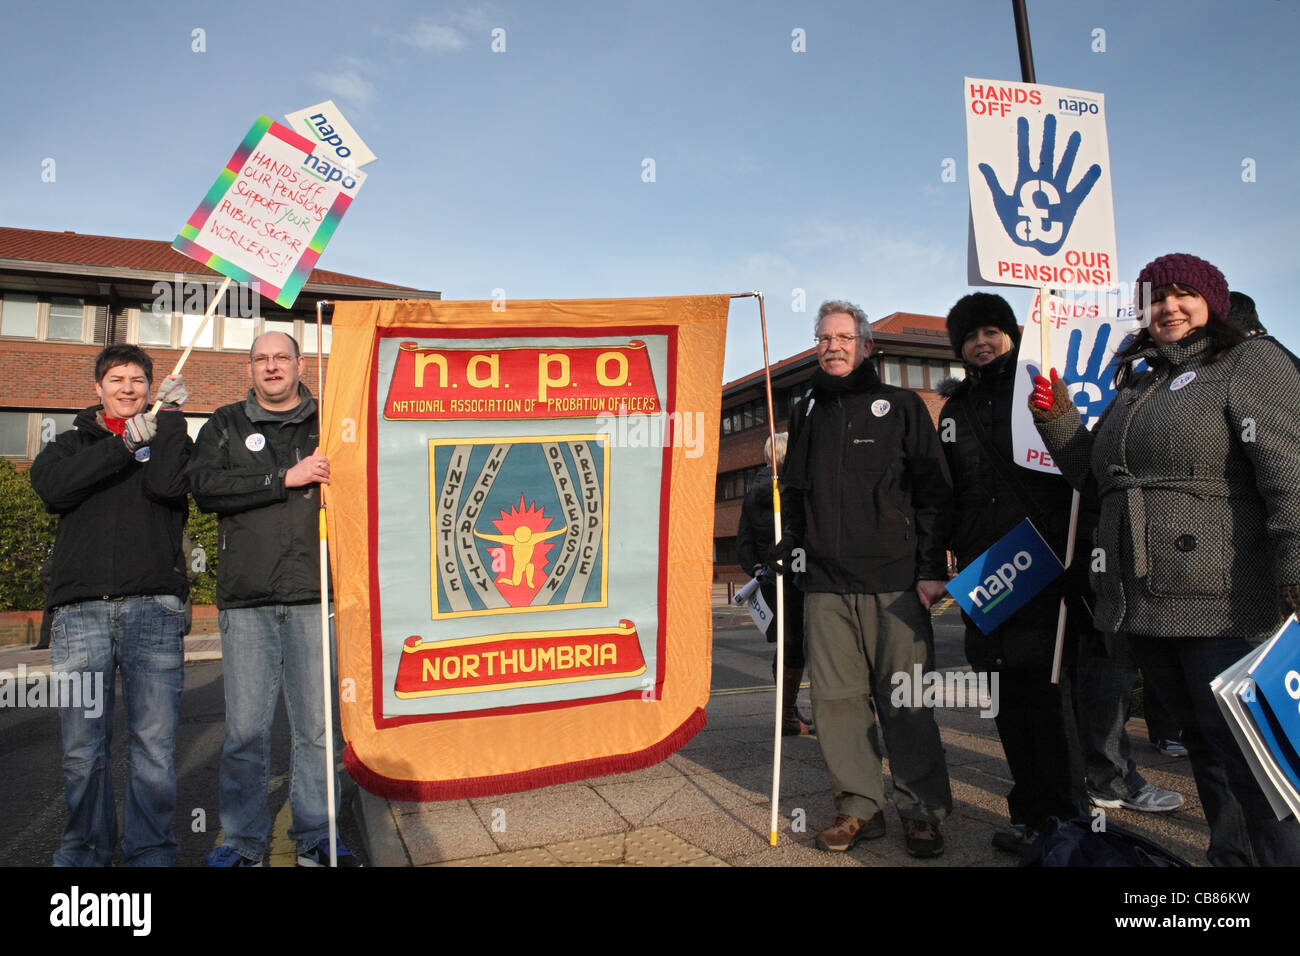 Members of the NAPO trades union with banners and placards, TUC day of action Gateshead, north east England, UK - Stock Image